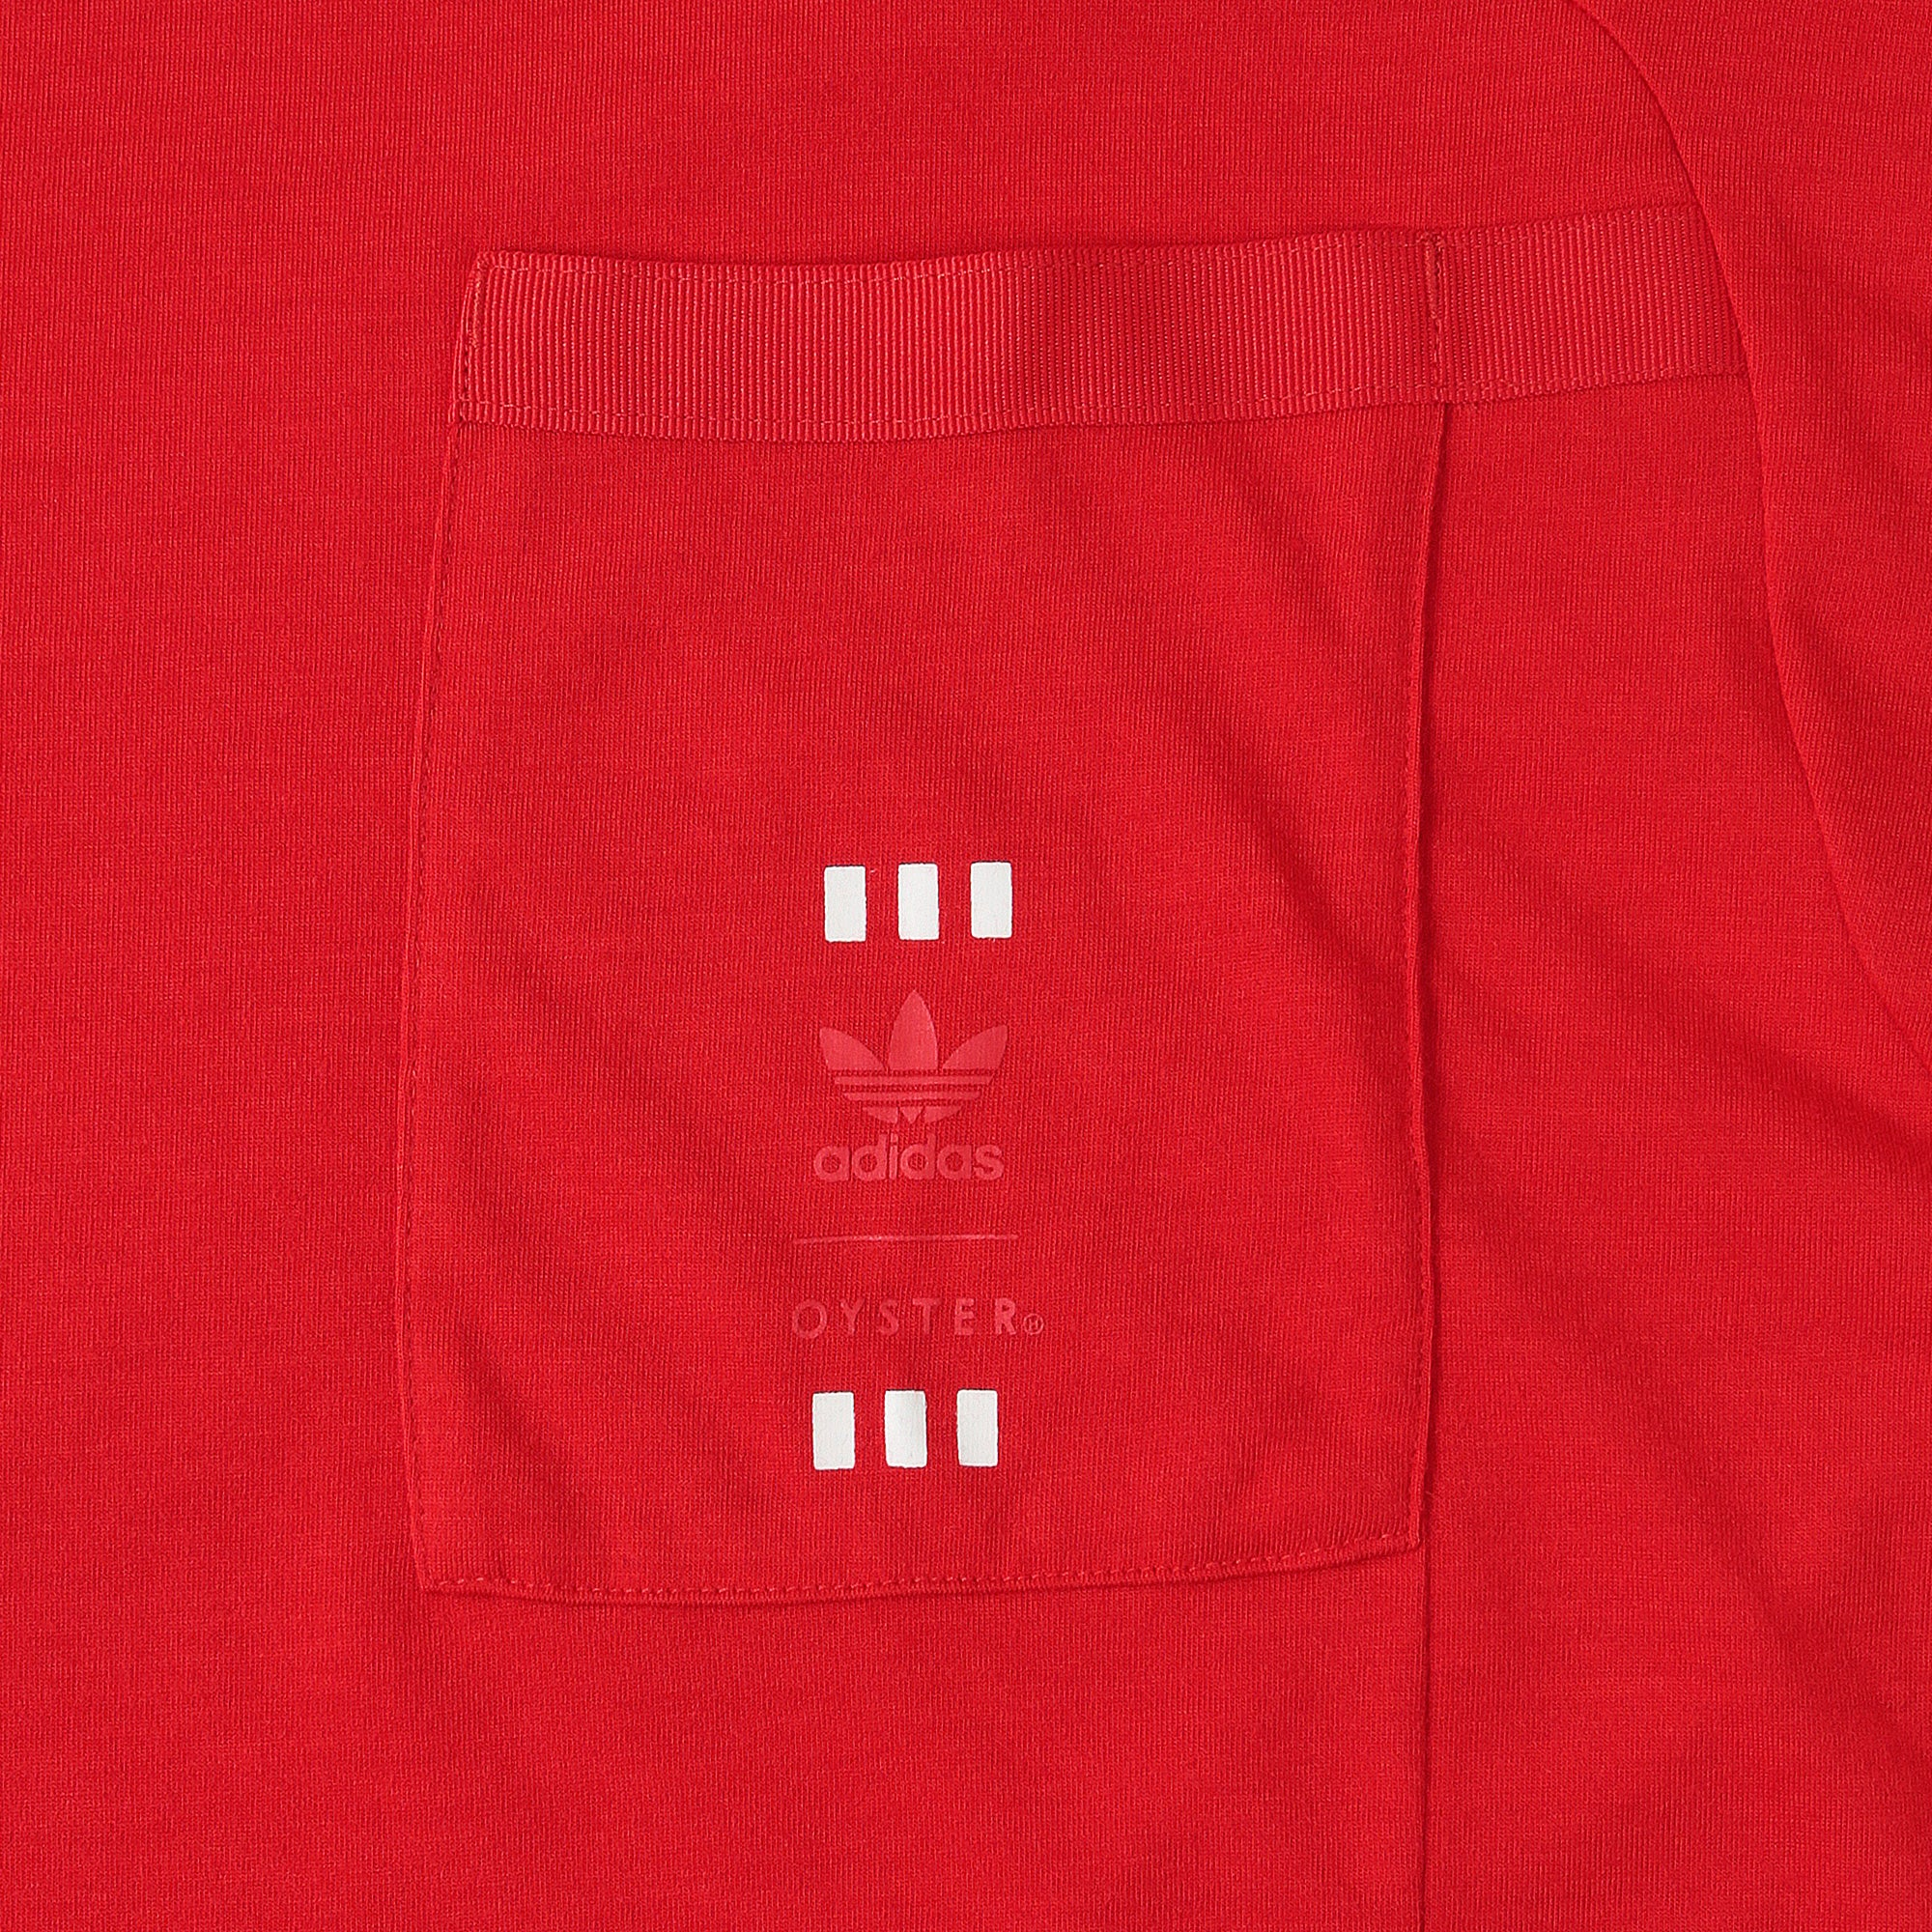 Adidas x Oyster Holdings Men's 72 Hour SS Tee [DU7891]